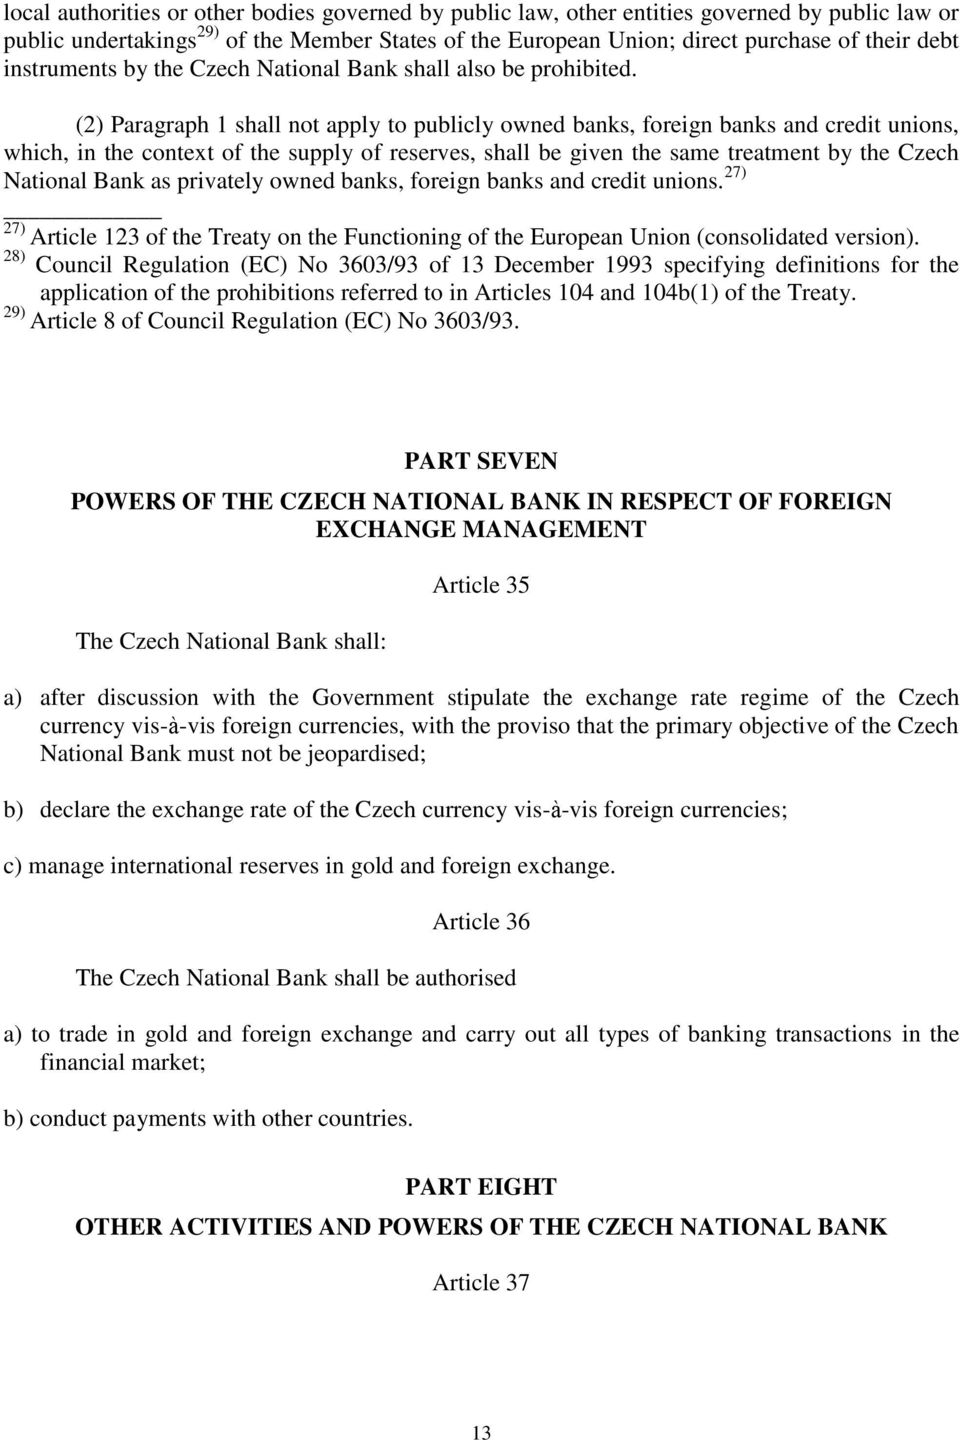 (2) Paragraph 1 shall not apply to publicly owned banks, foreign banks and credit unions, which, in the context of the supply of reserves, shall be given the same treatment by the Czech National Bank